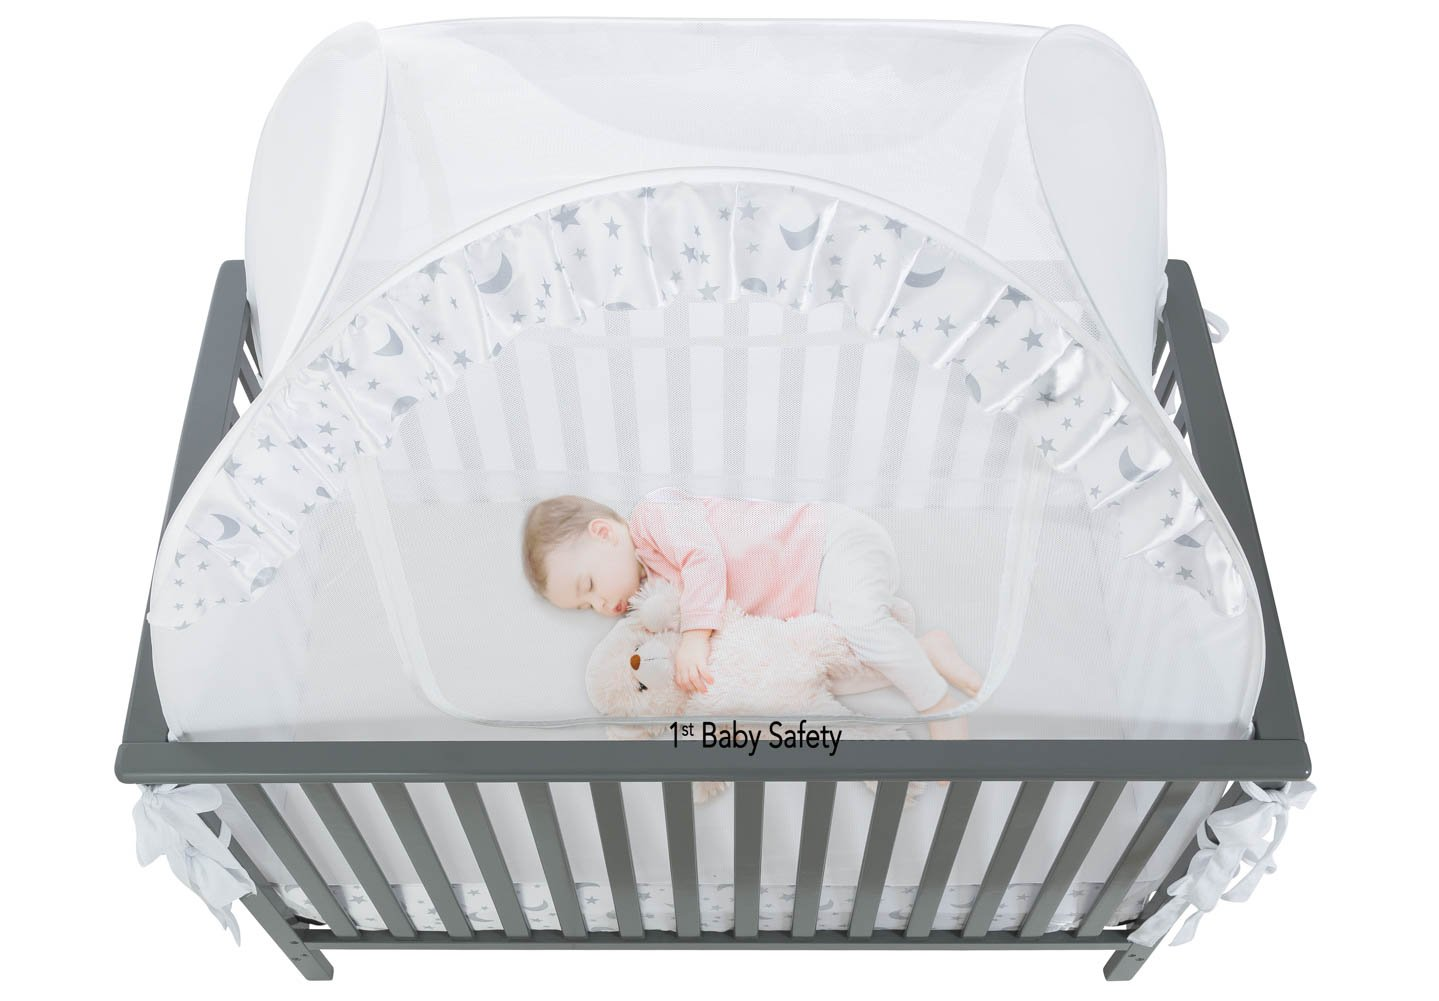 Amazon.com  SEE THROUGH MESH TOP - Baby Crib Tent Safety Net Pop Up Canopy Cover  Baby  sc 1 st  Amazon.com & Amazon.com : SEE THROUGH MESH TOP - Baby Crib Tent Safety Net Pop ...